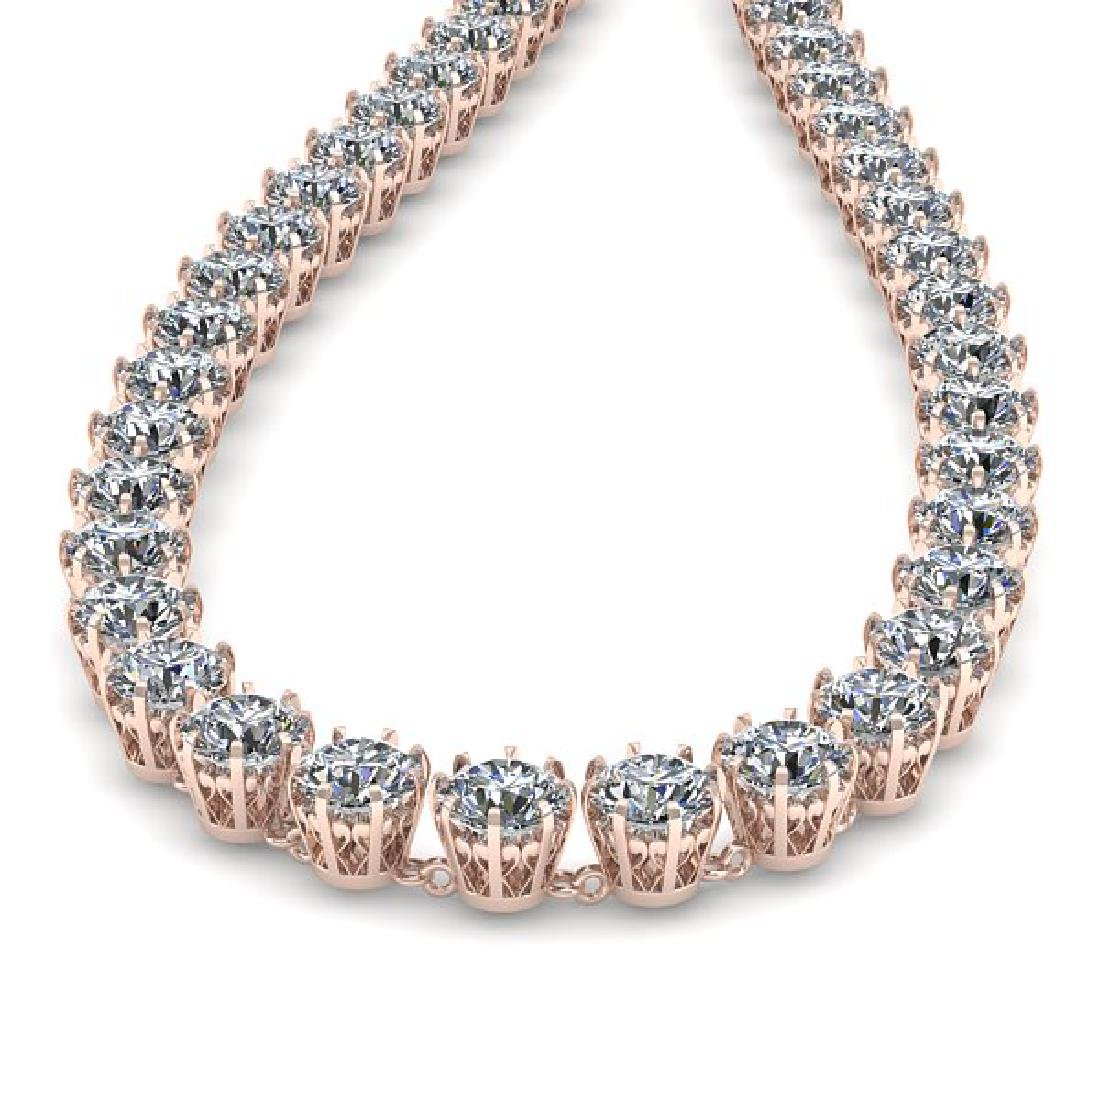 40 CTW SI Certified Diamond Necklace 18K Rose Gold - 2